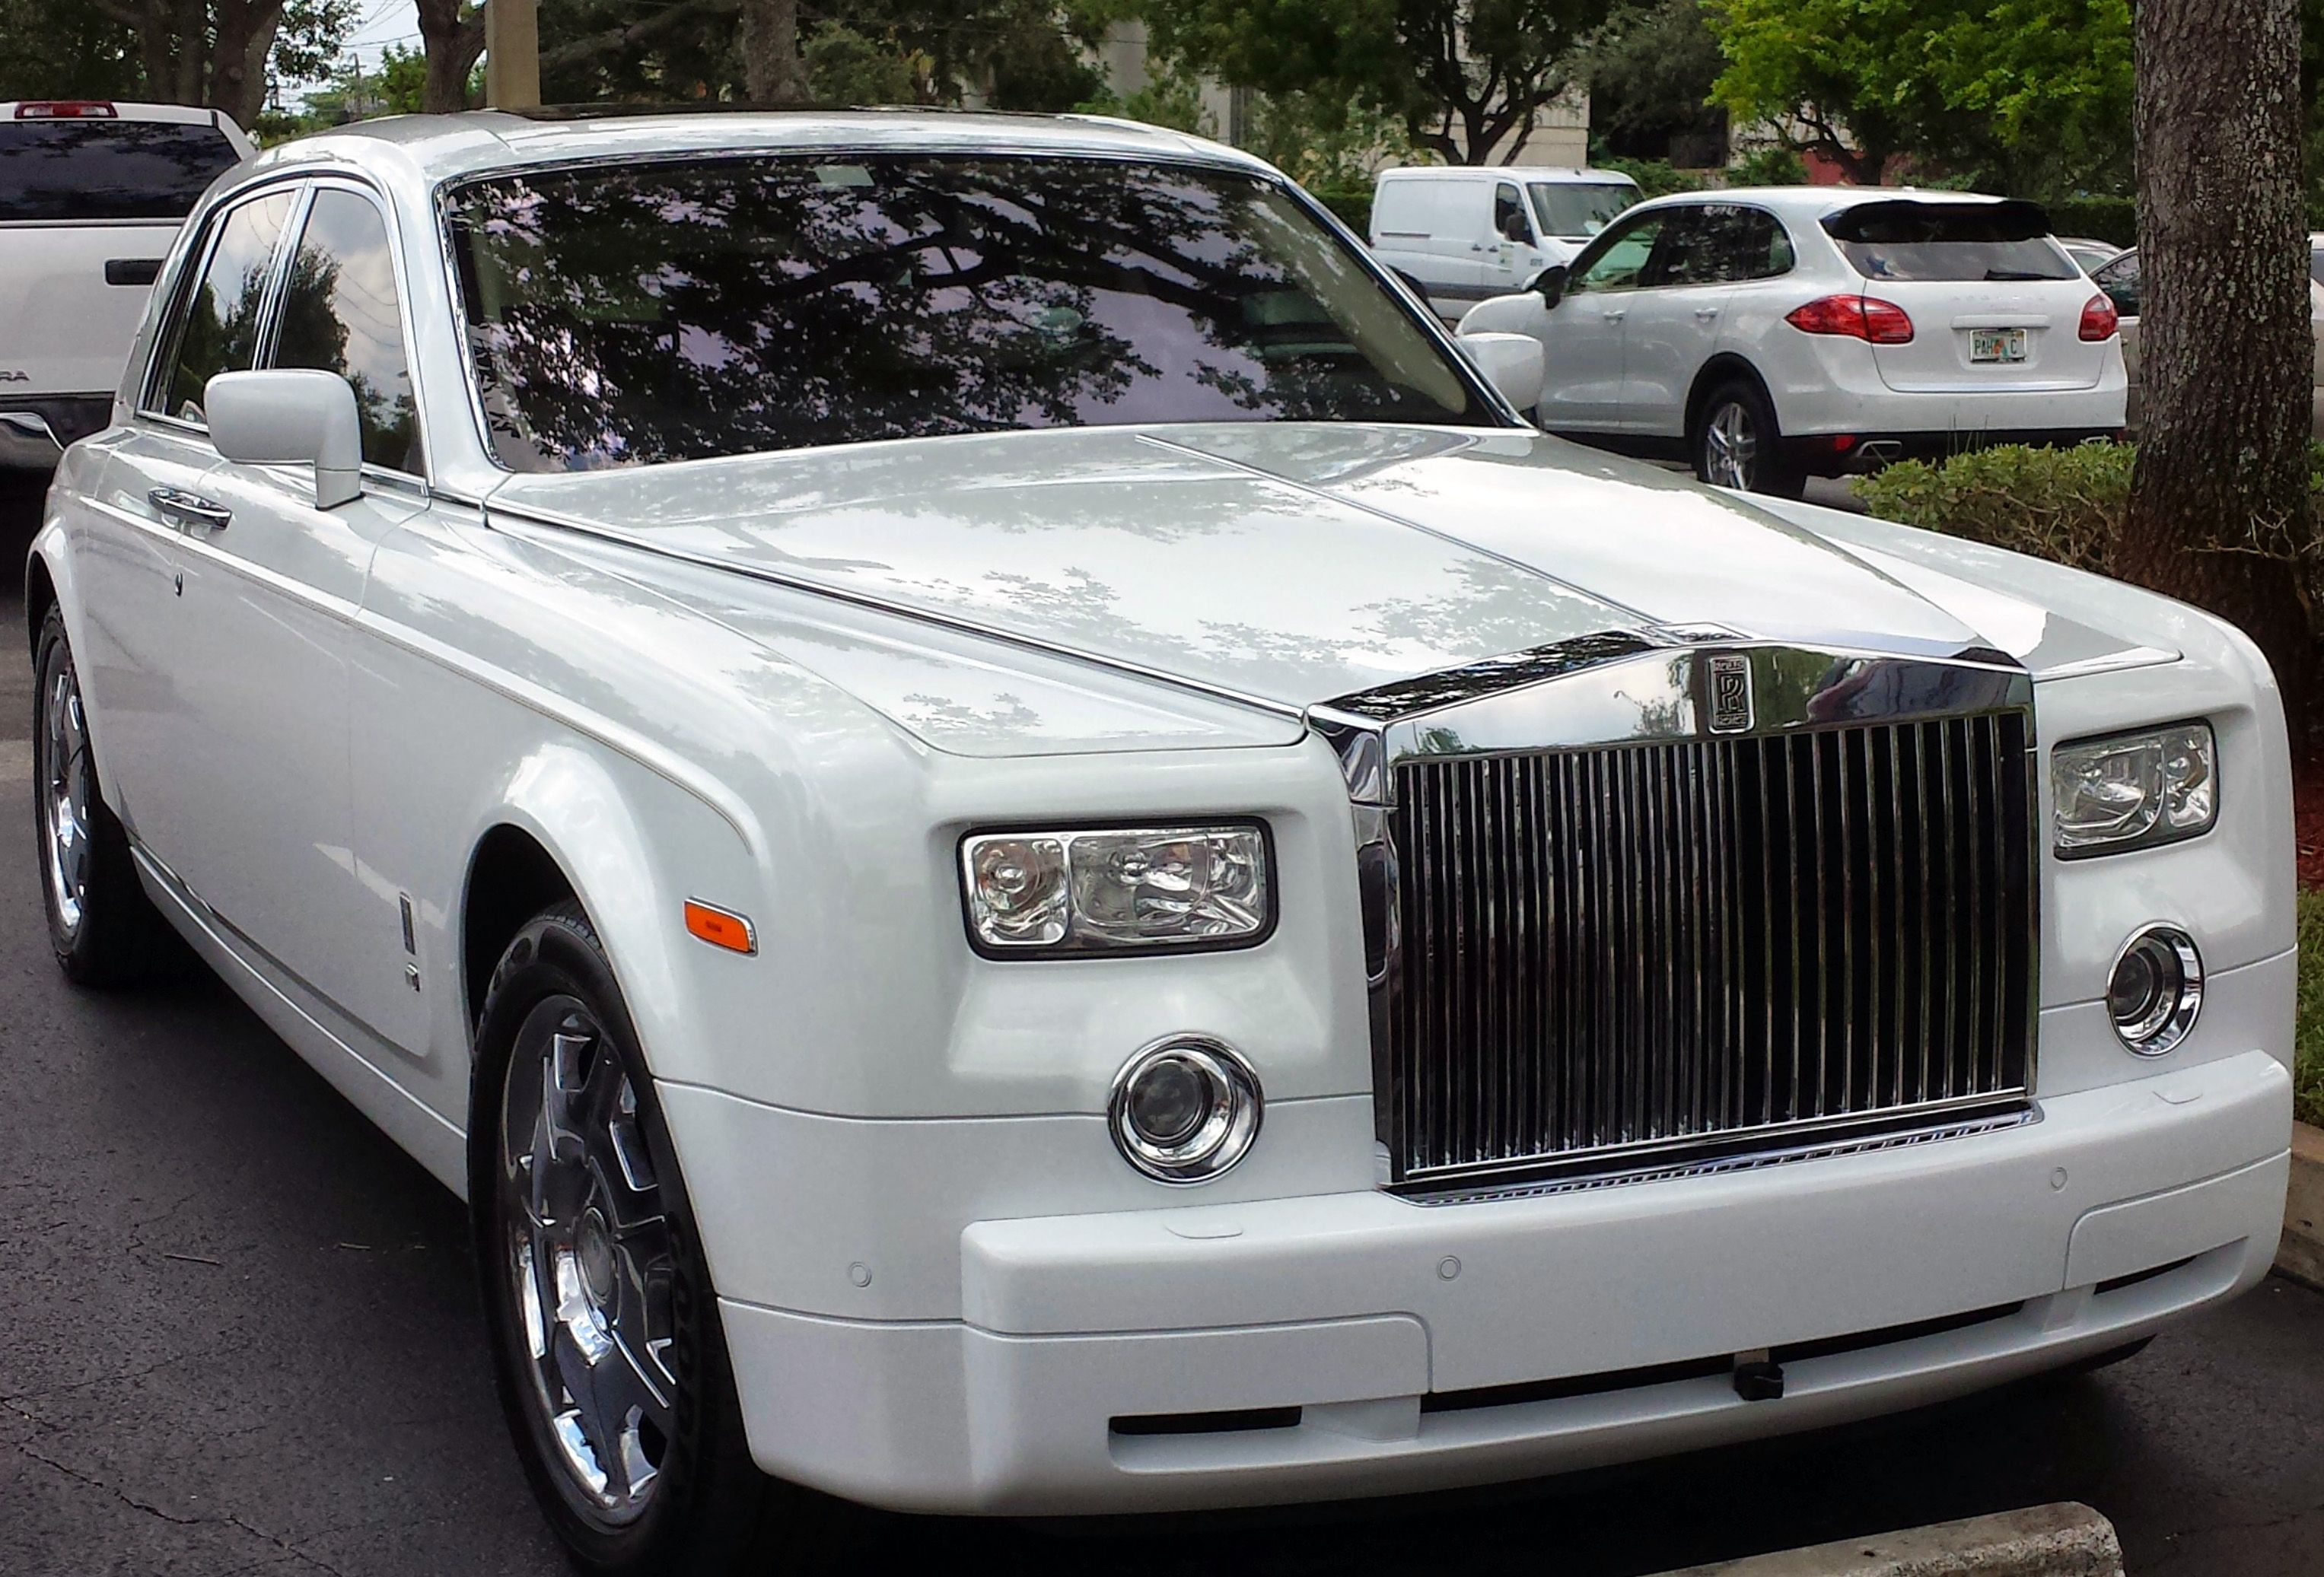 check out this sleek classy rolls royce phantom coupe we saw at rh pinterest com